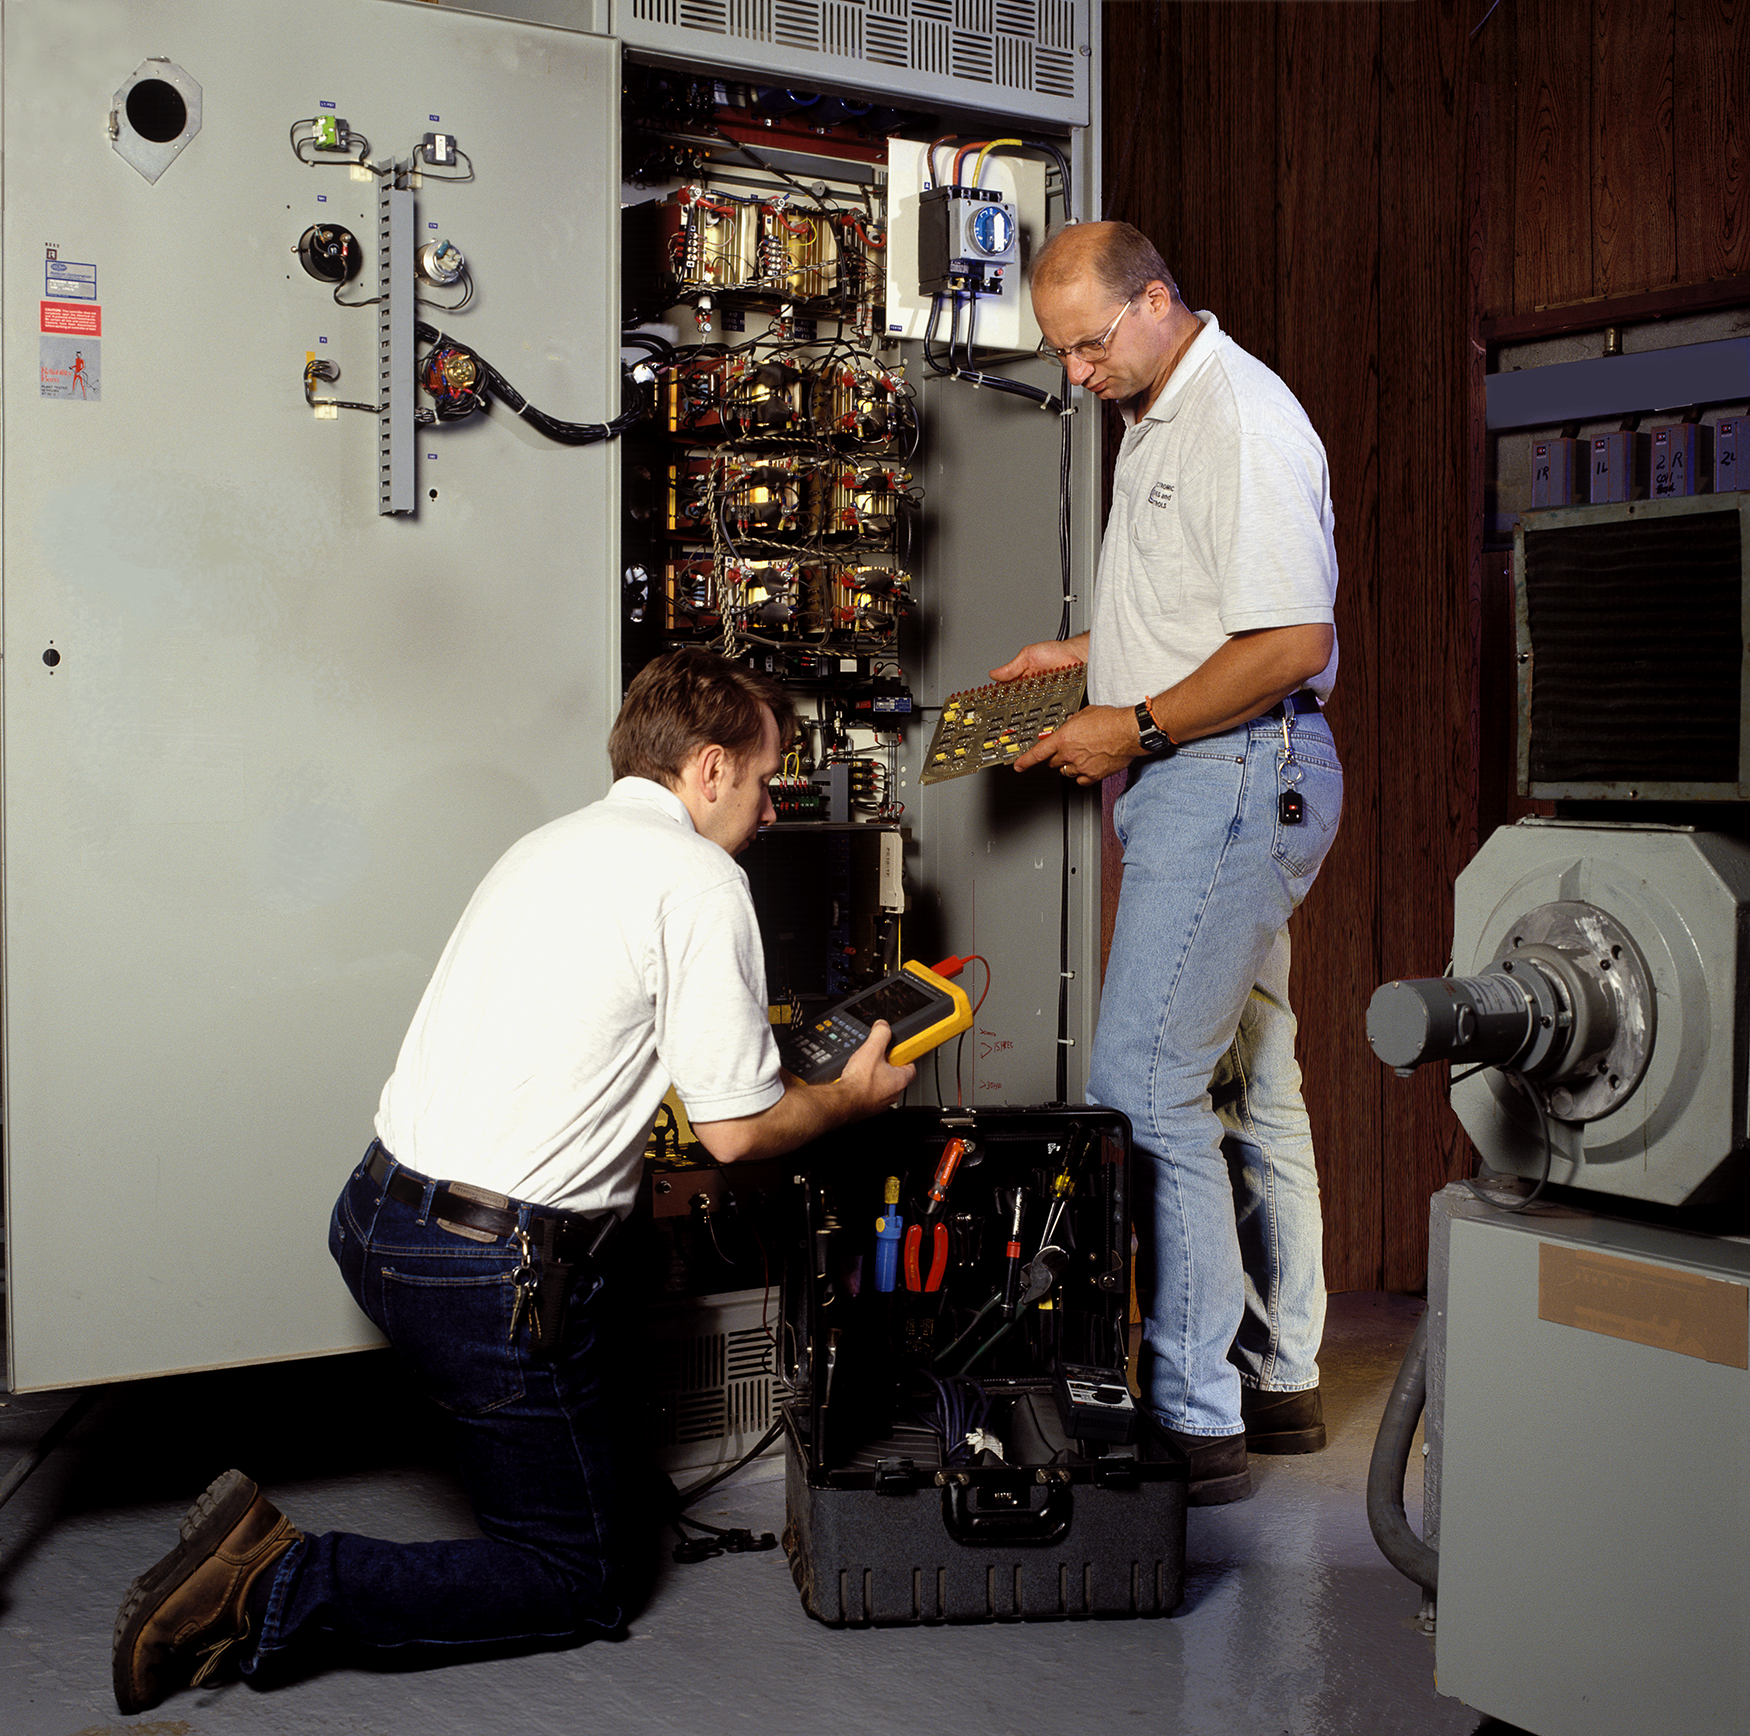 Employees servicing equipment